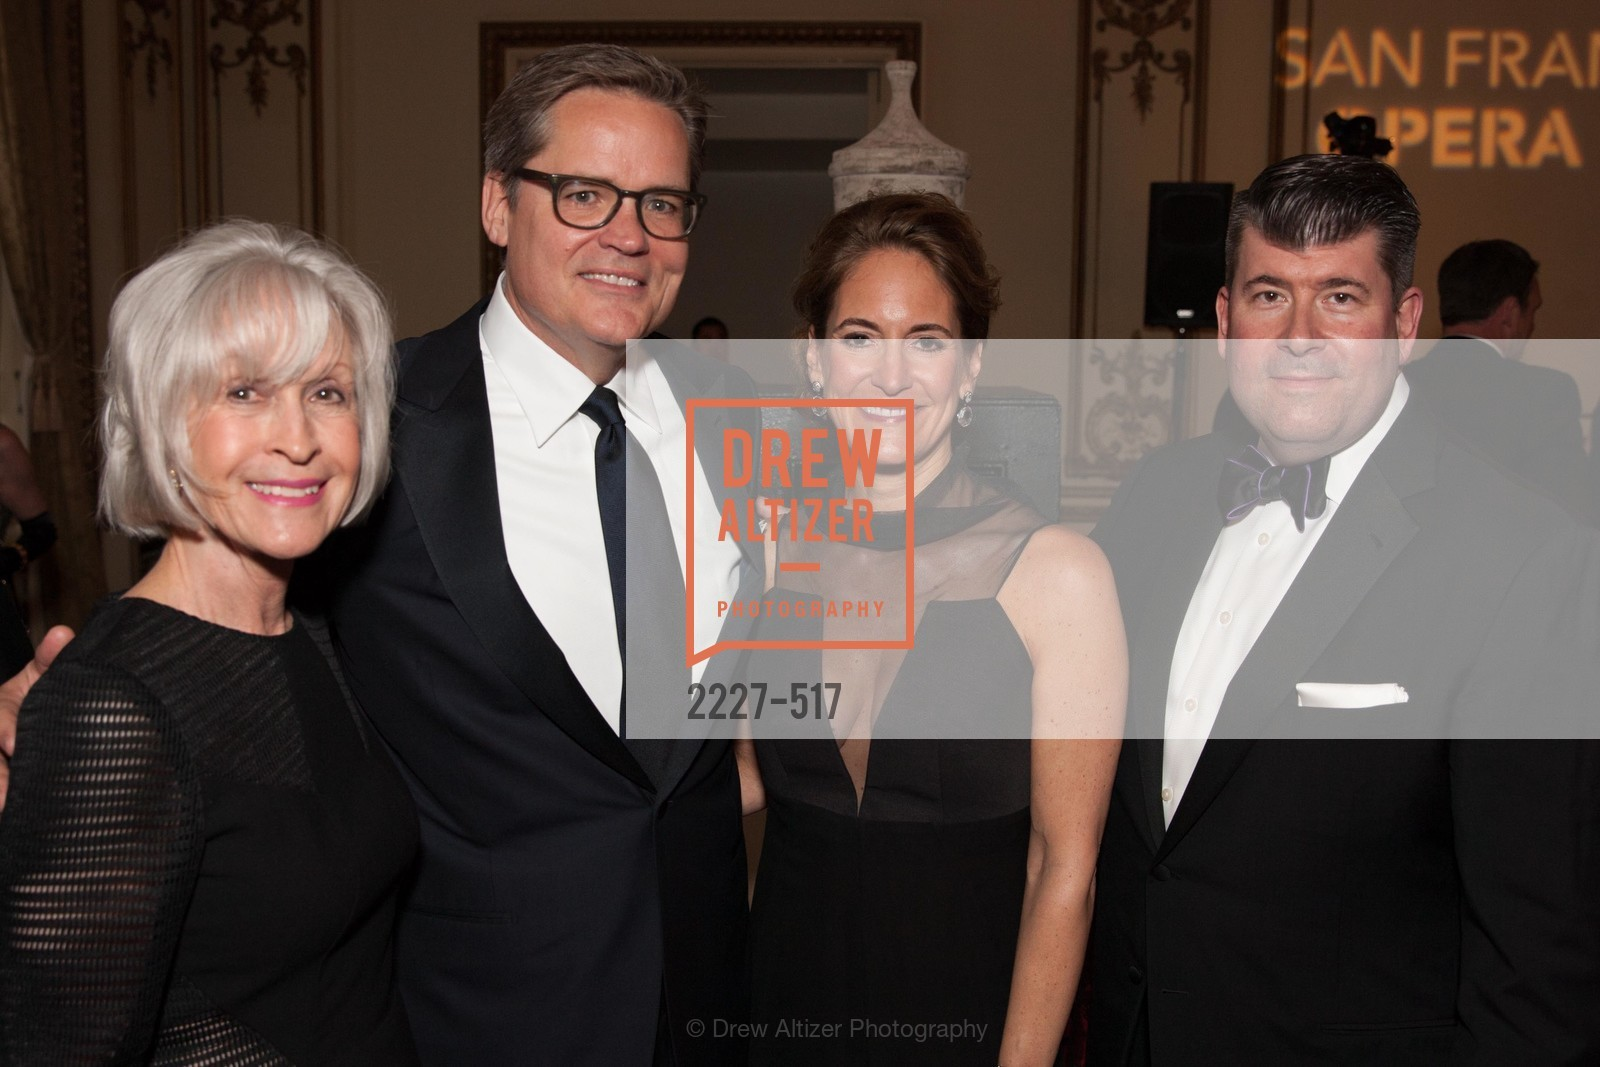 Victoria Kornblum, John Fleming, Shari Fleming, Alan Morrell, SAN FRANCISCO OPERA GUILD Presents POPera, US. US, April 10th, 2014,Drew Altizer, Drew Altizer Photography, full-service agency, private events, San Francisco photographer, photographer california